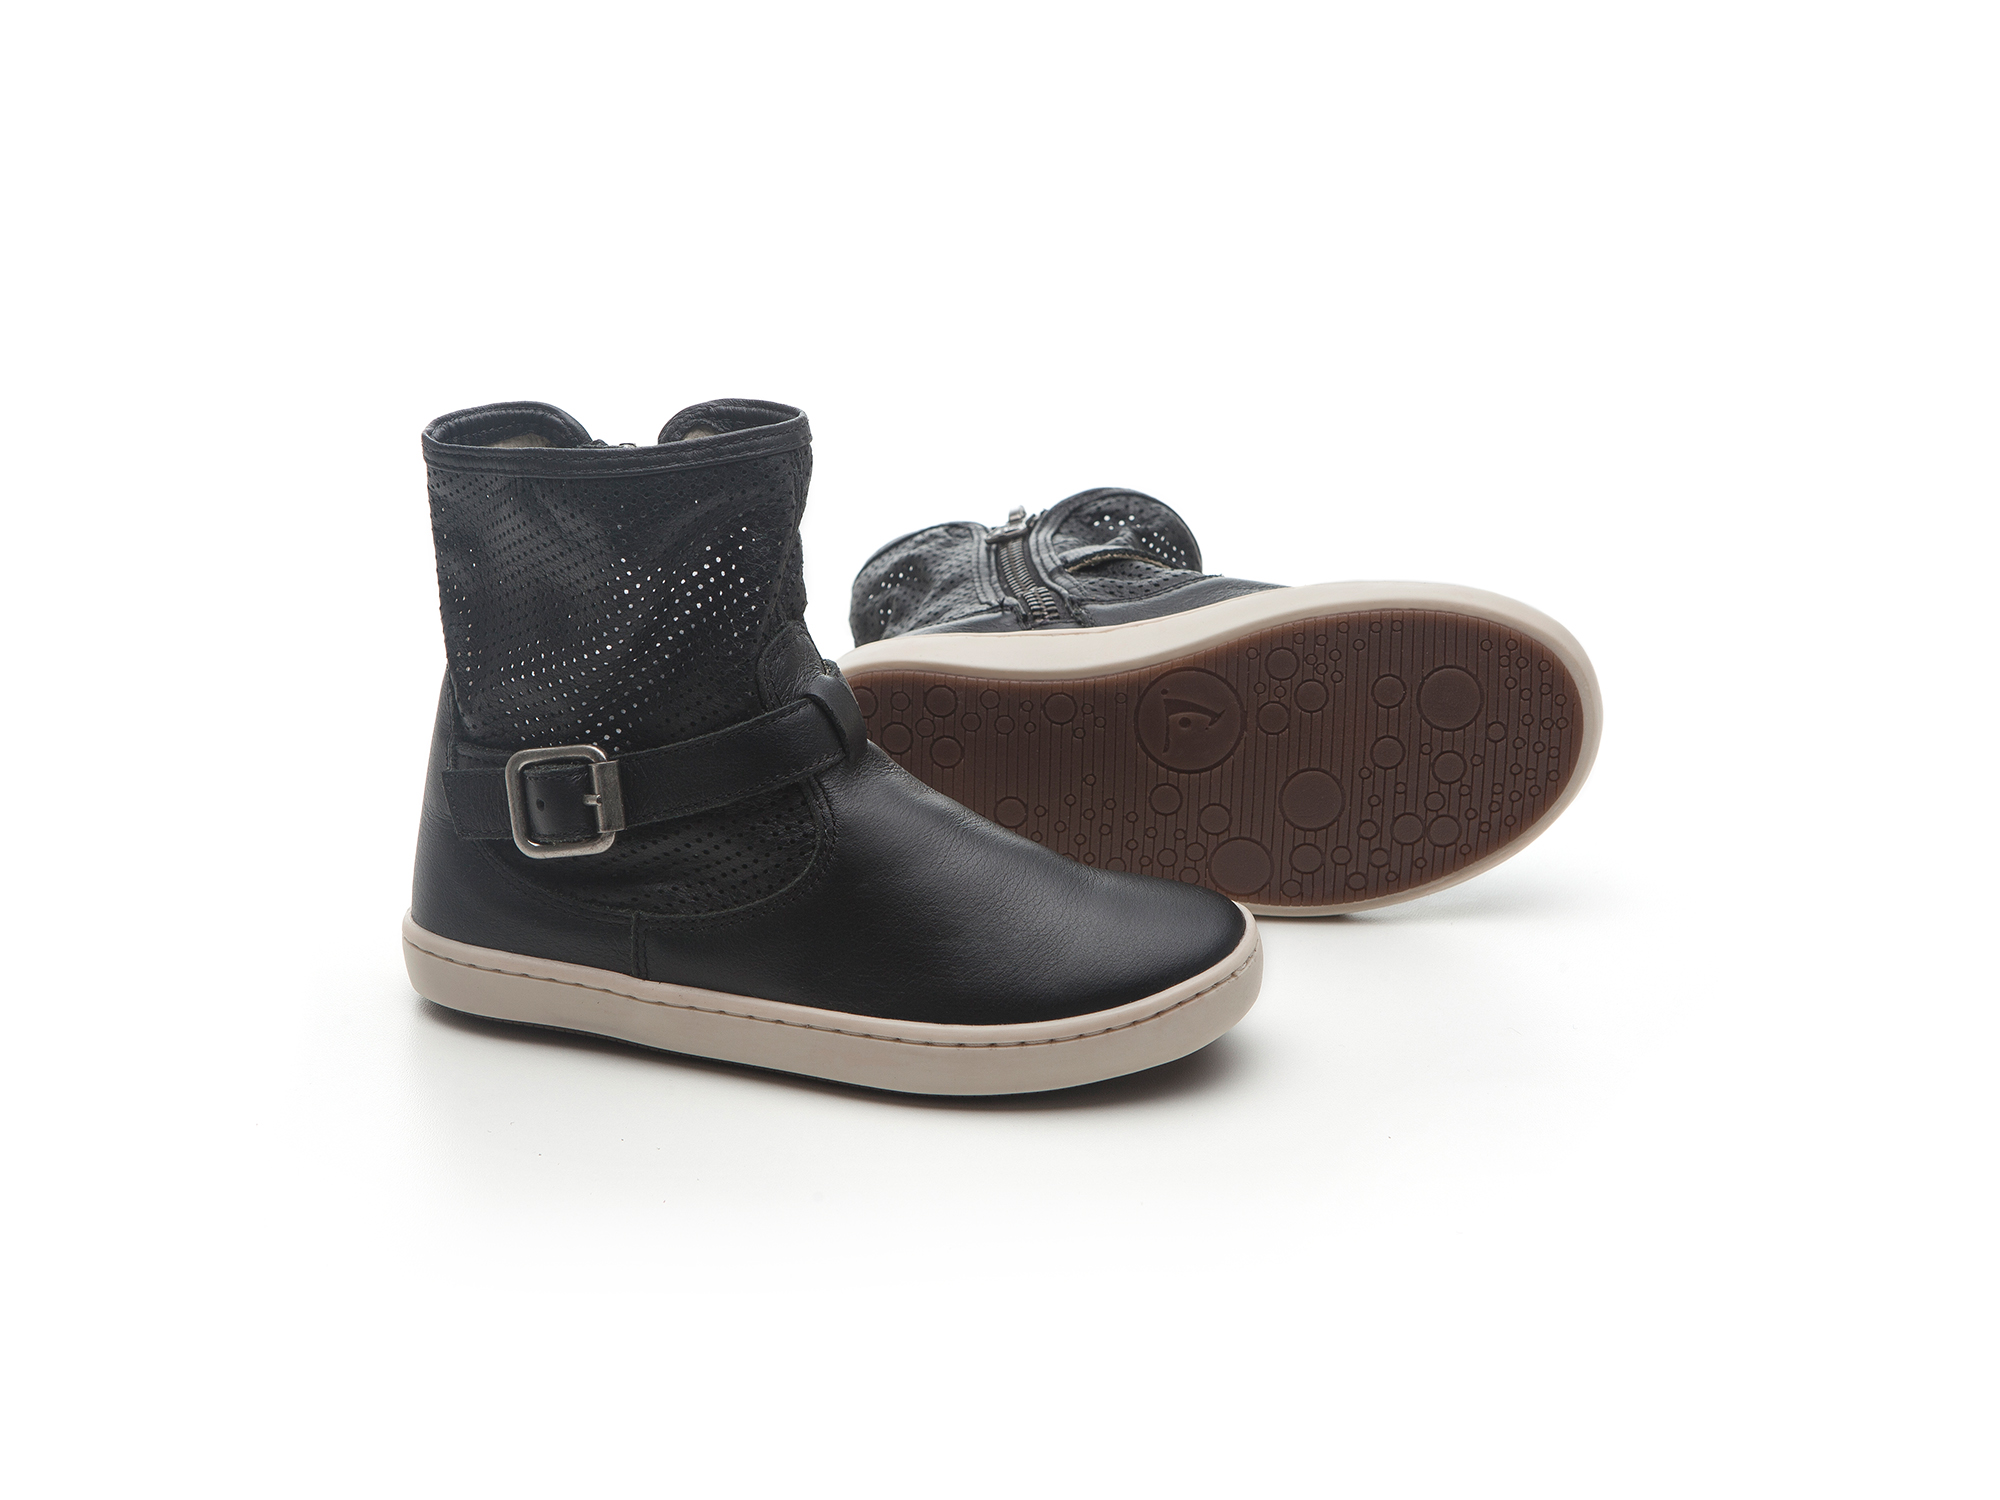 Bota Raw Black/ Black Holes  Junior 4 à 8 anos - 2